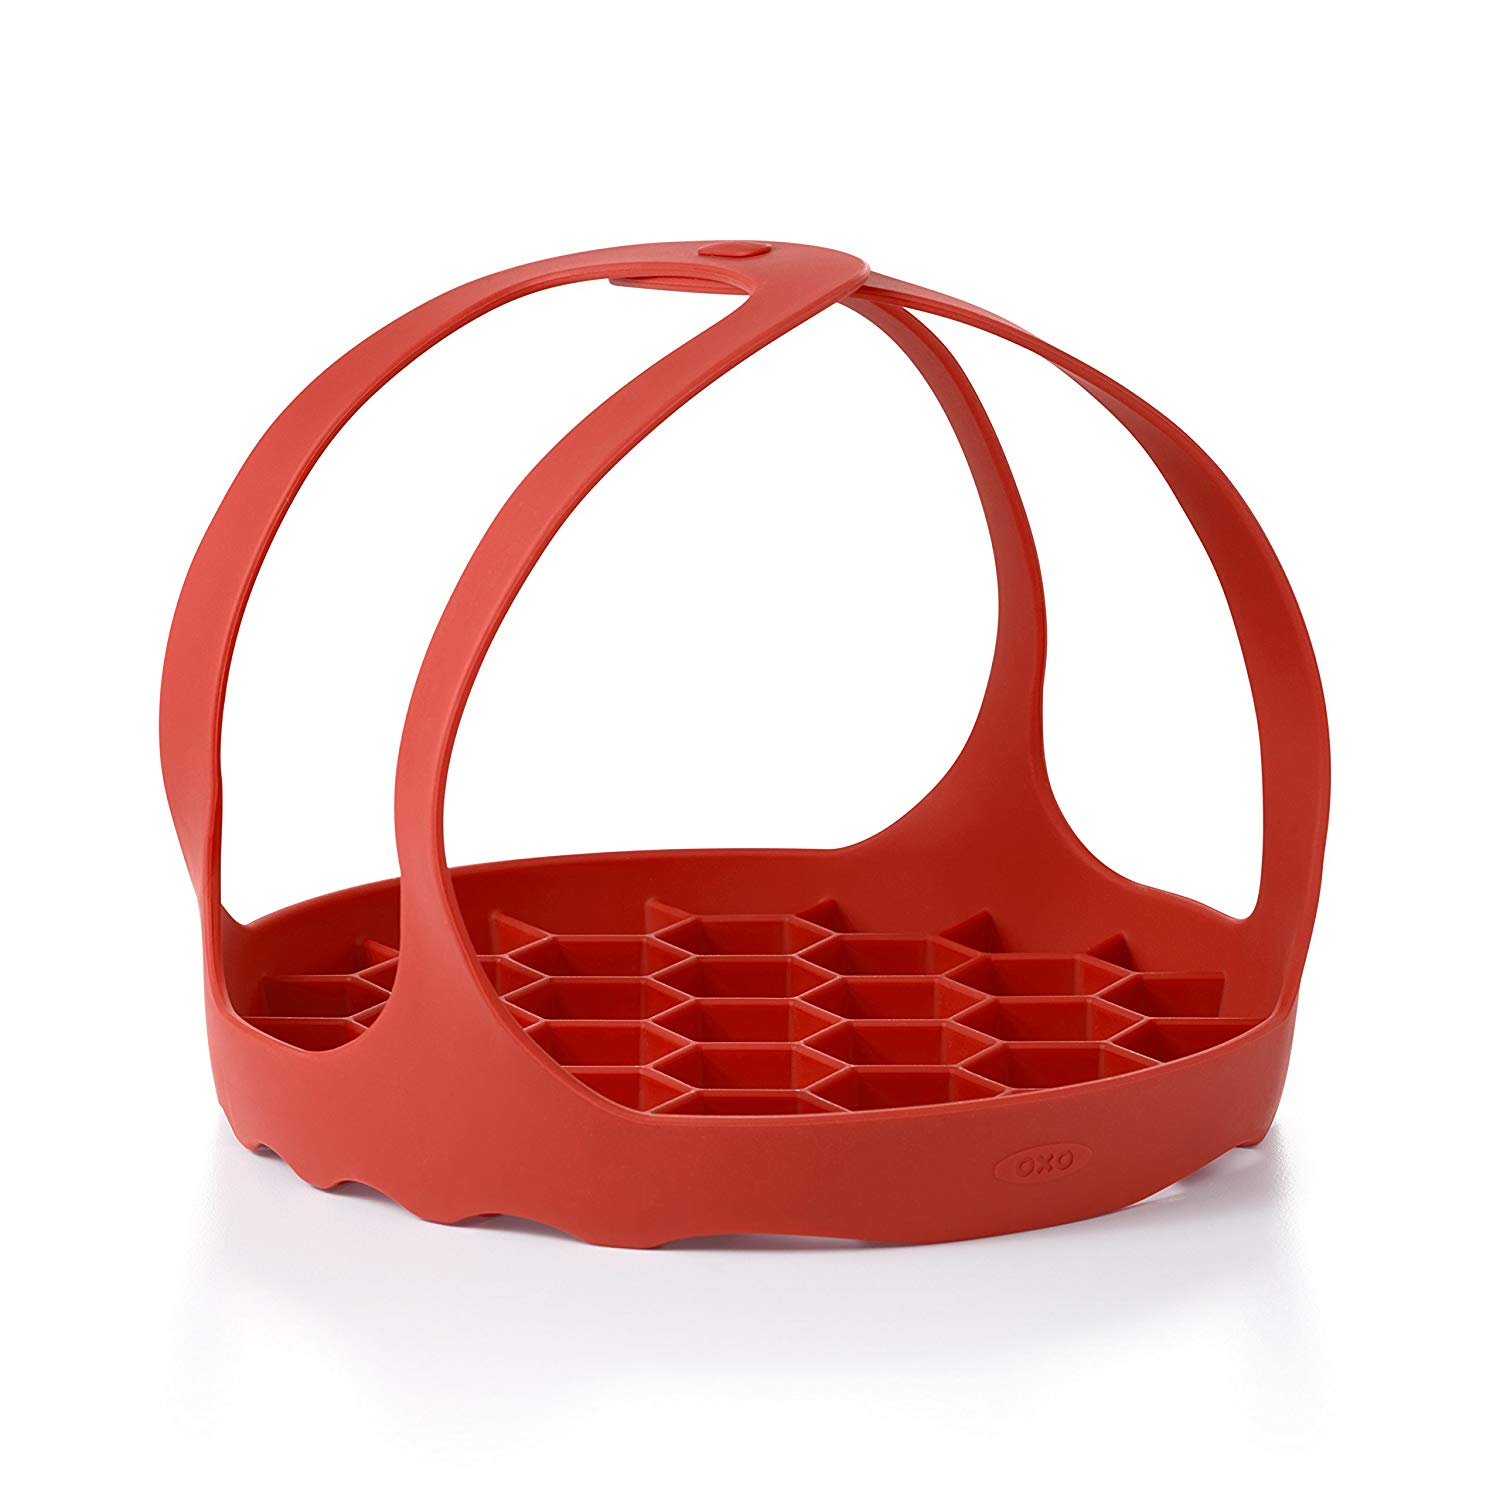 Red silicone sling for lifting bakeware out of Instant Pot